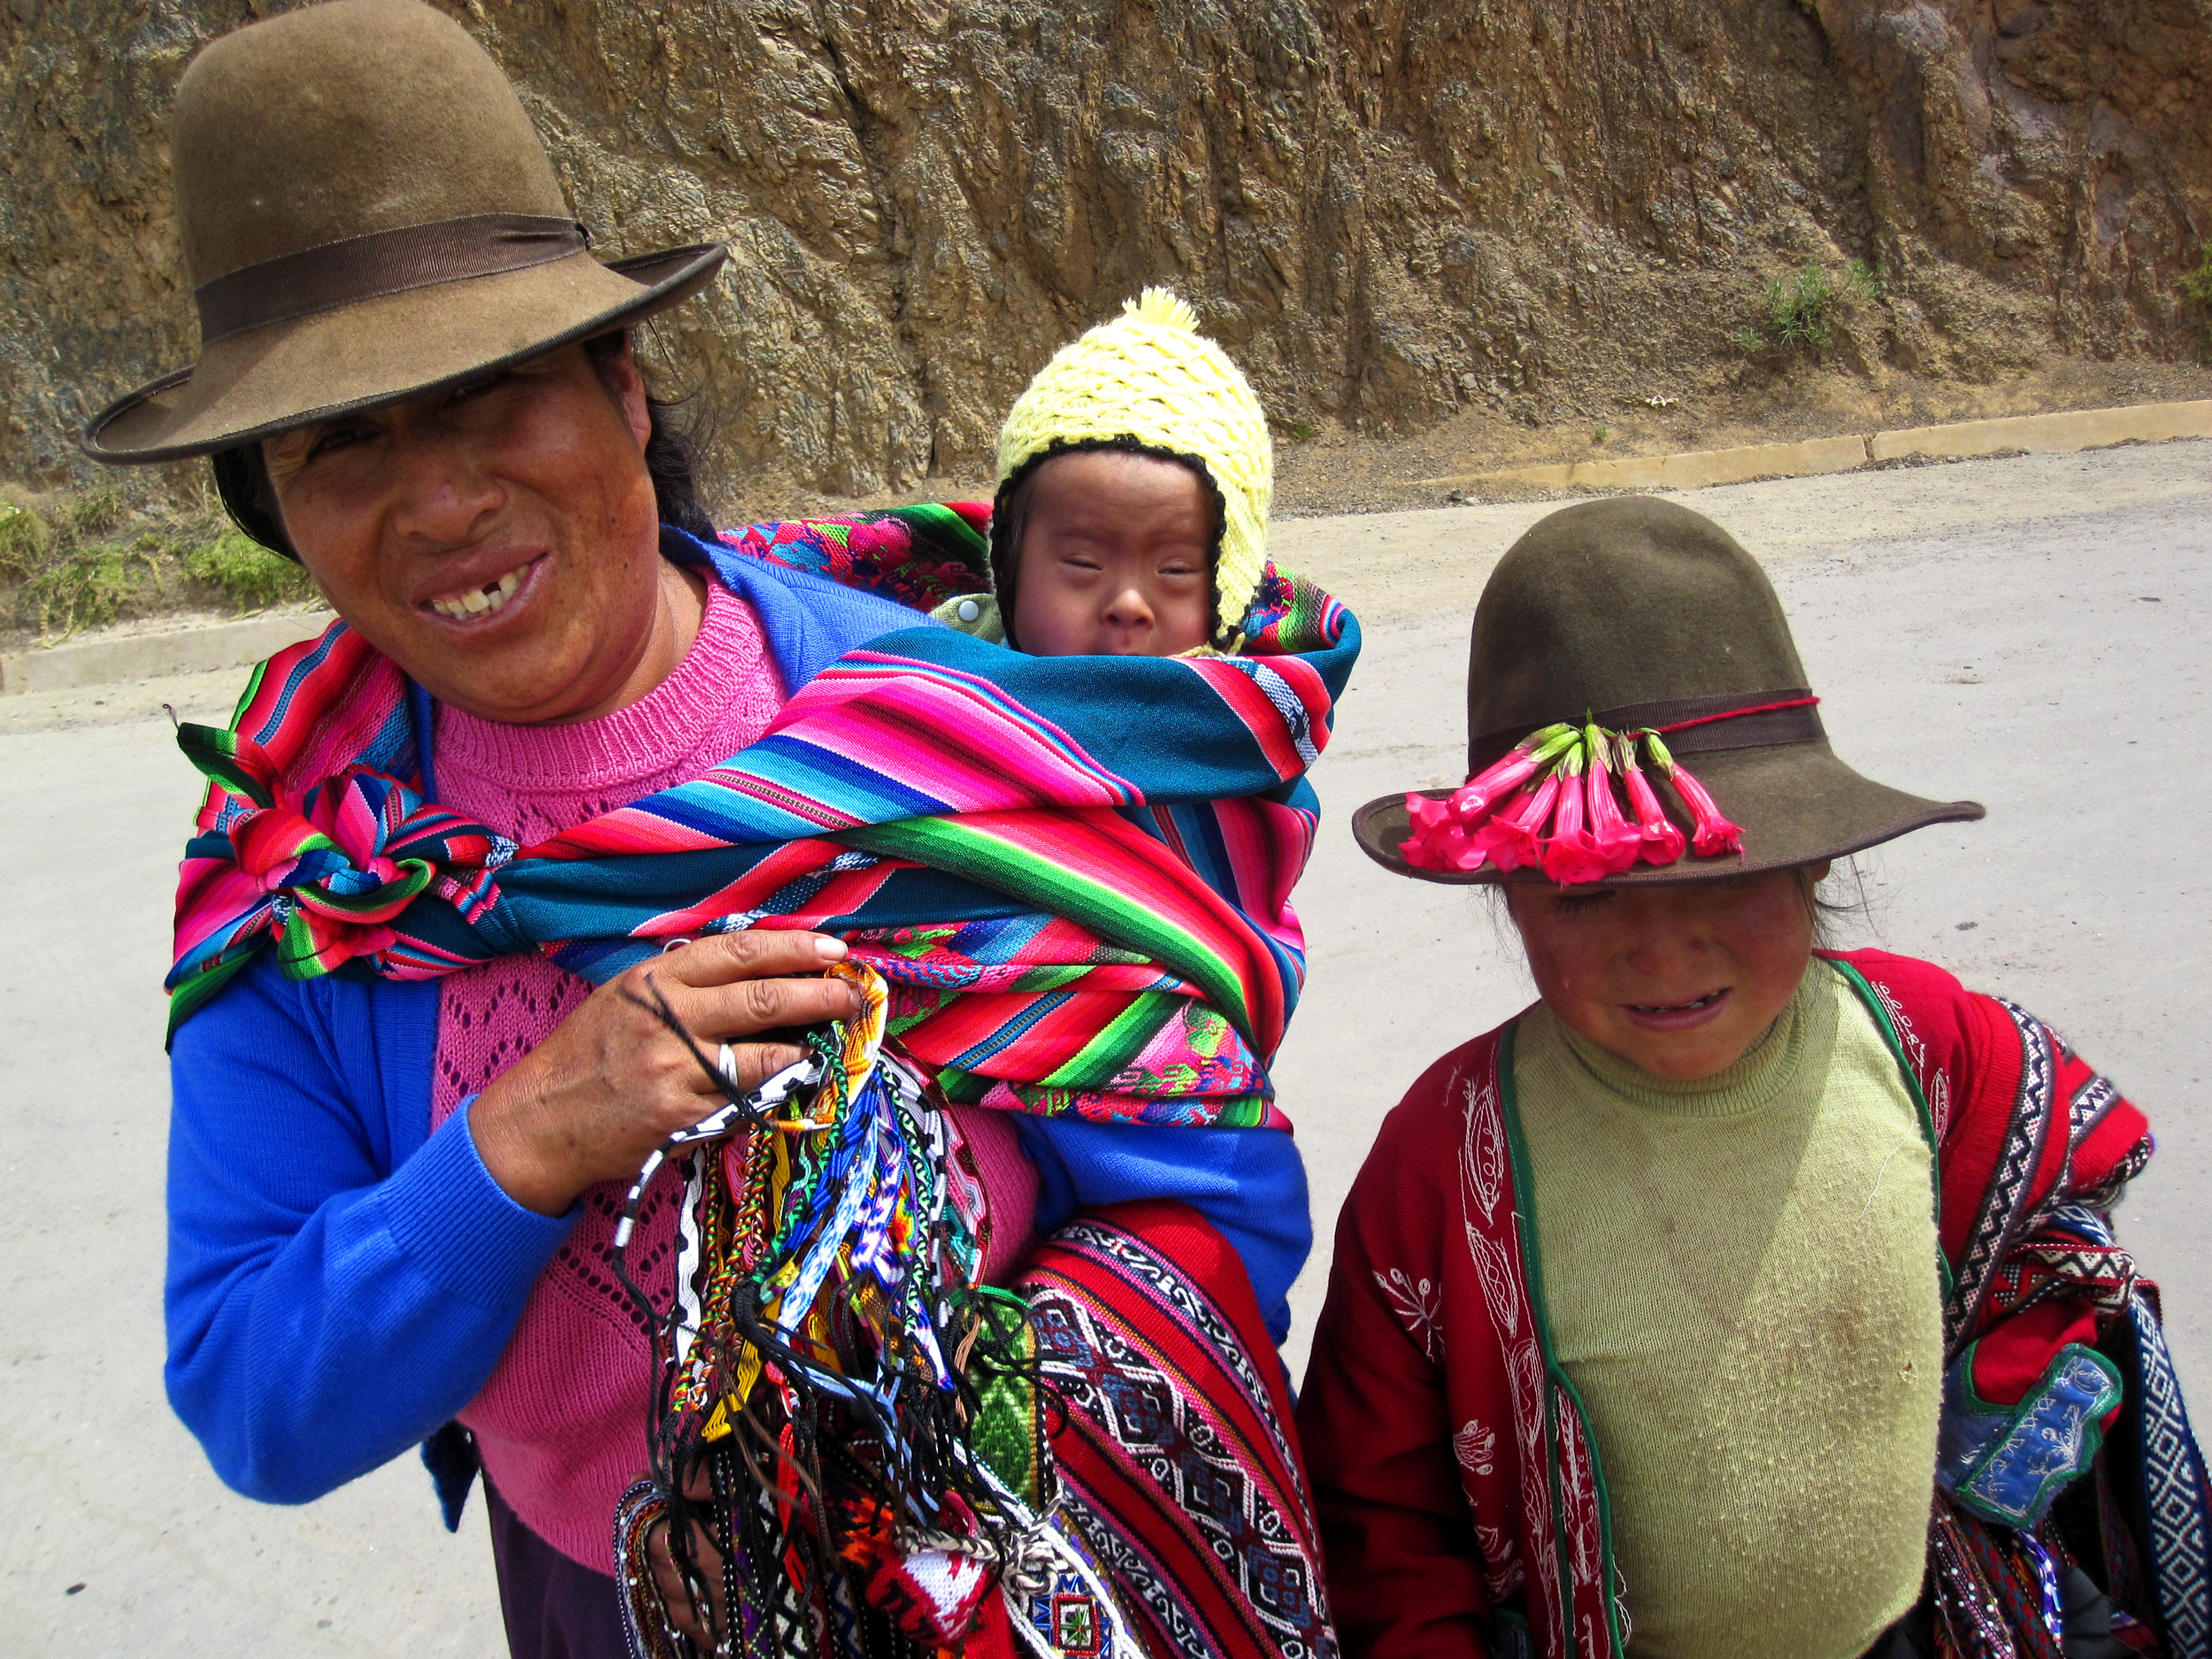 We met this Quechua woman and her two children in one of the ruins. She and her older daugher sell these bracelets she weaves. Moms like her are the ones participating in our vaccine bracelet pilot study. Photo taken: May 26, 2013.